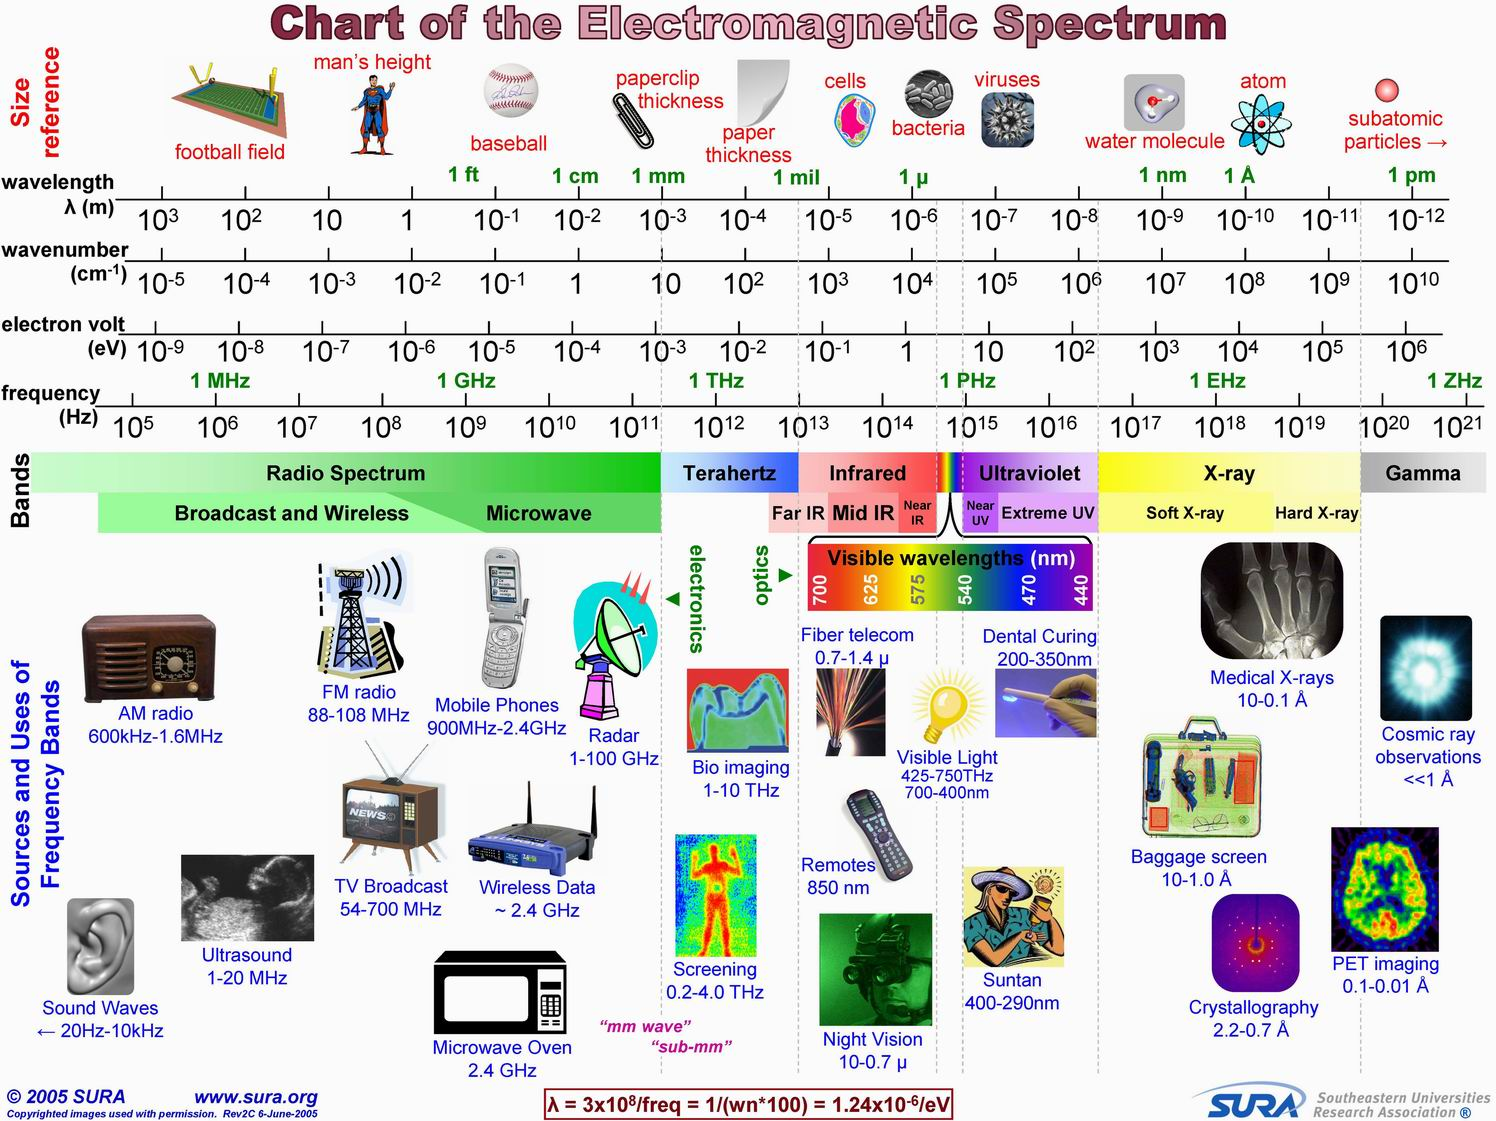 electromagnetic spectrum diagram labeled salzer rotary switch wiring chart of the spectrumวศวกรรมเหมองแร